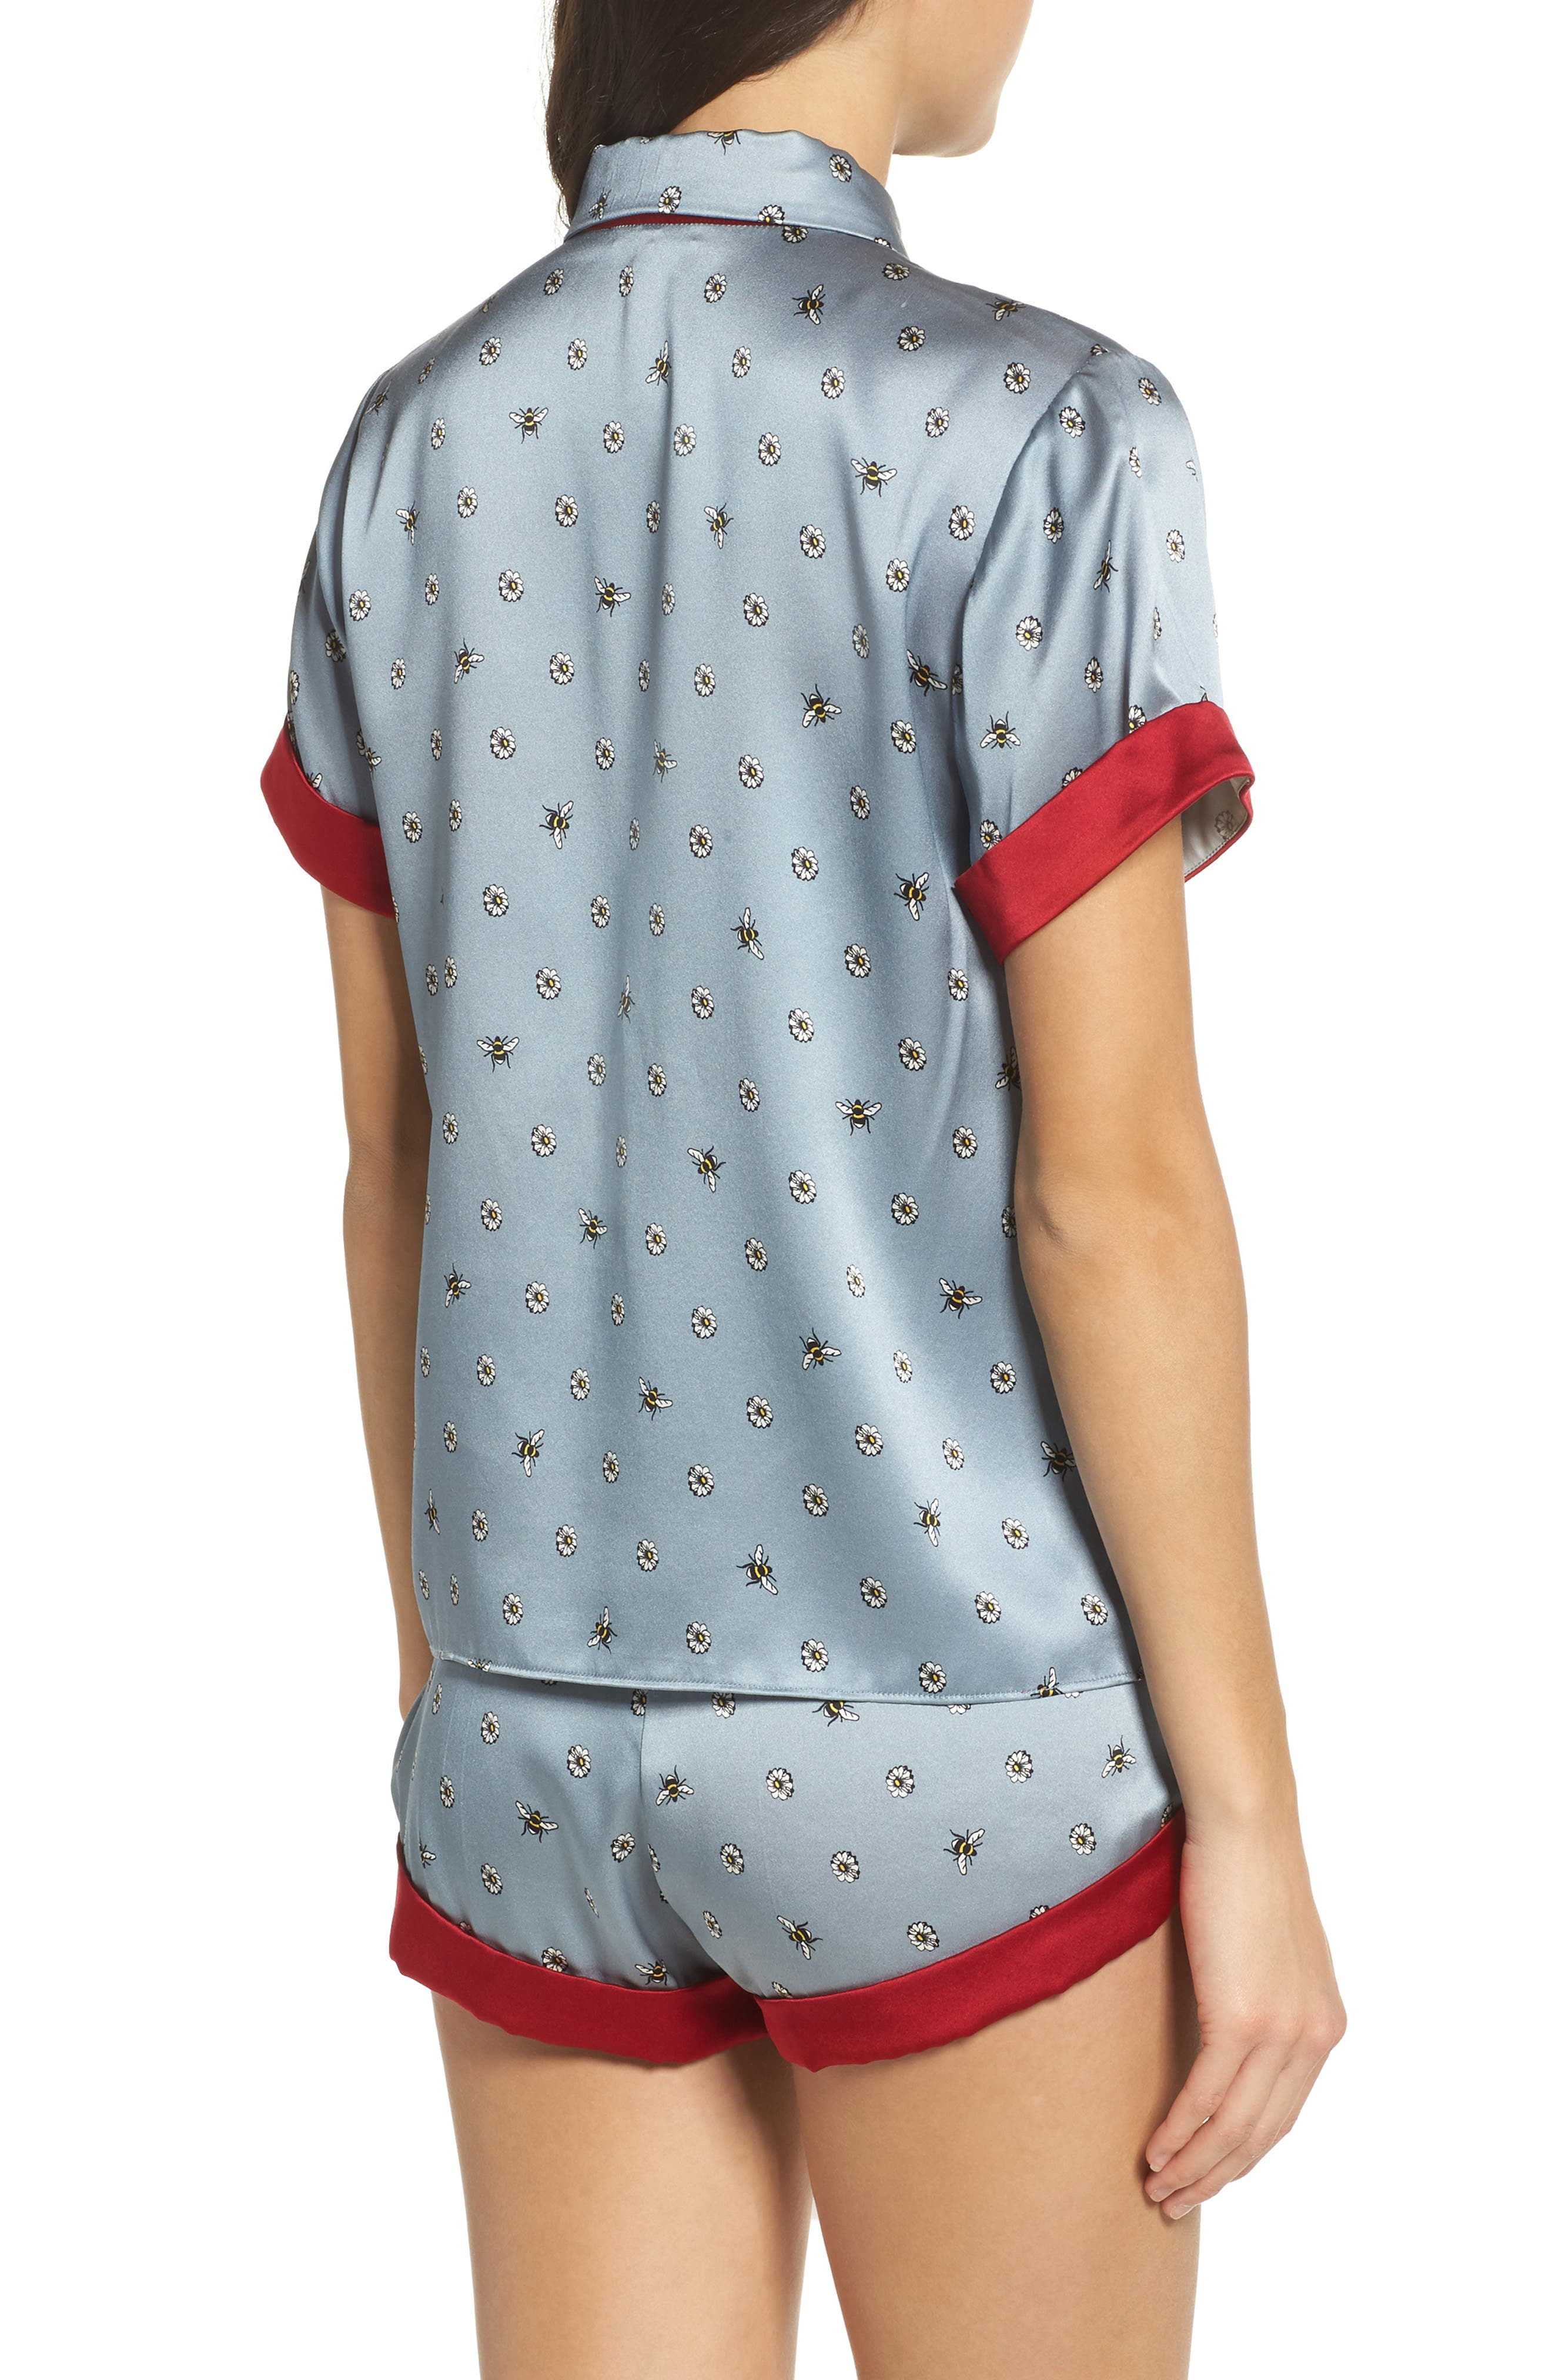 Staci Silk Pajama Top,                             Alternate thumbnail 2, color,                             490